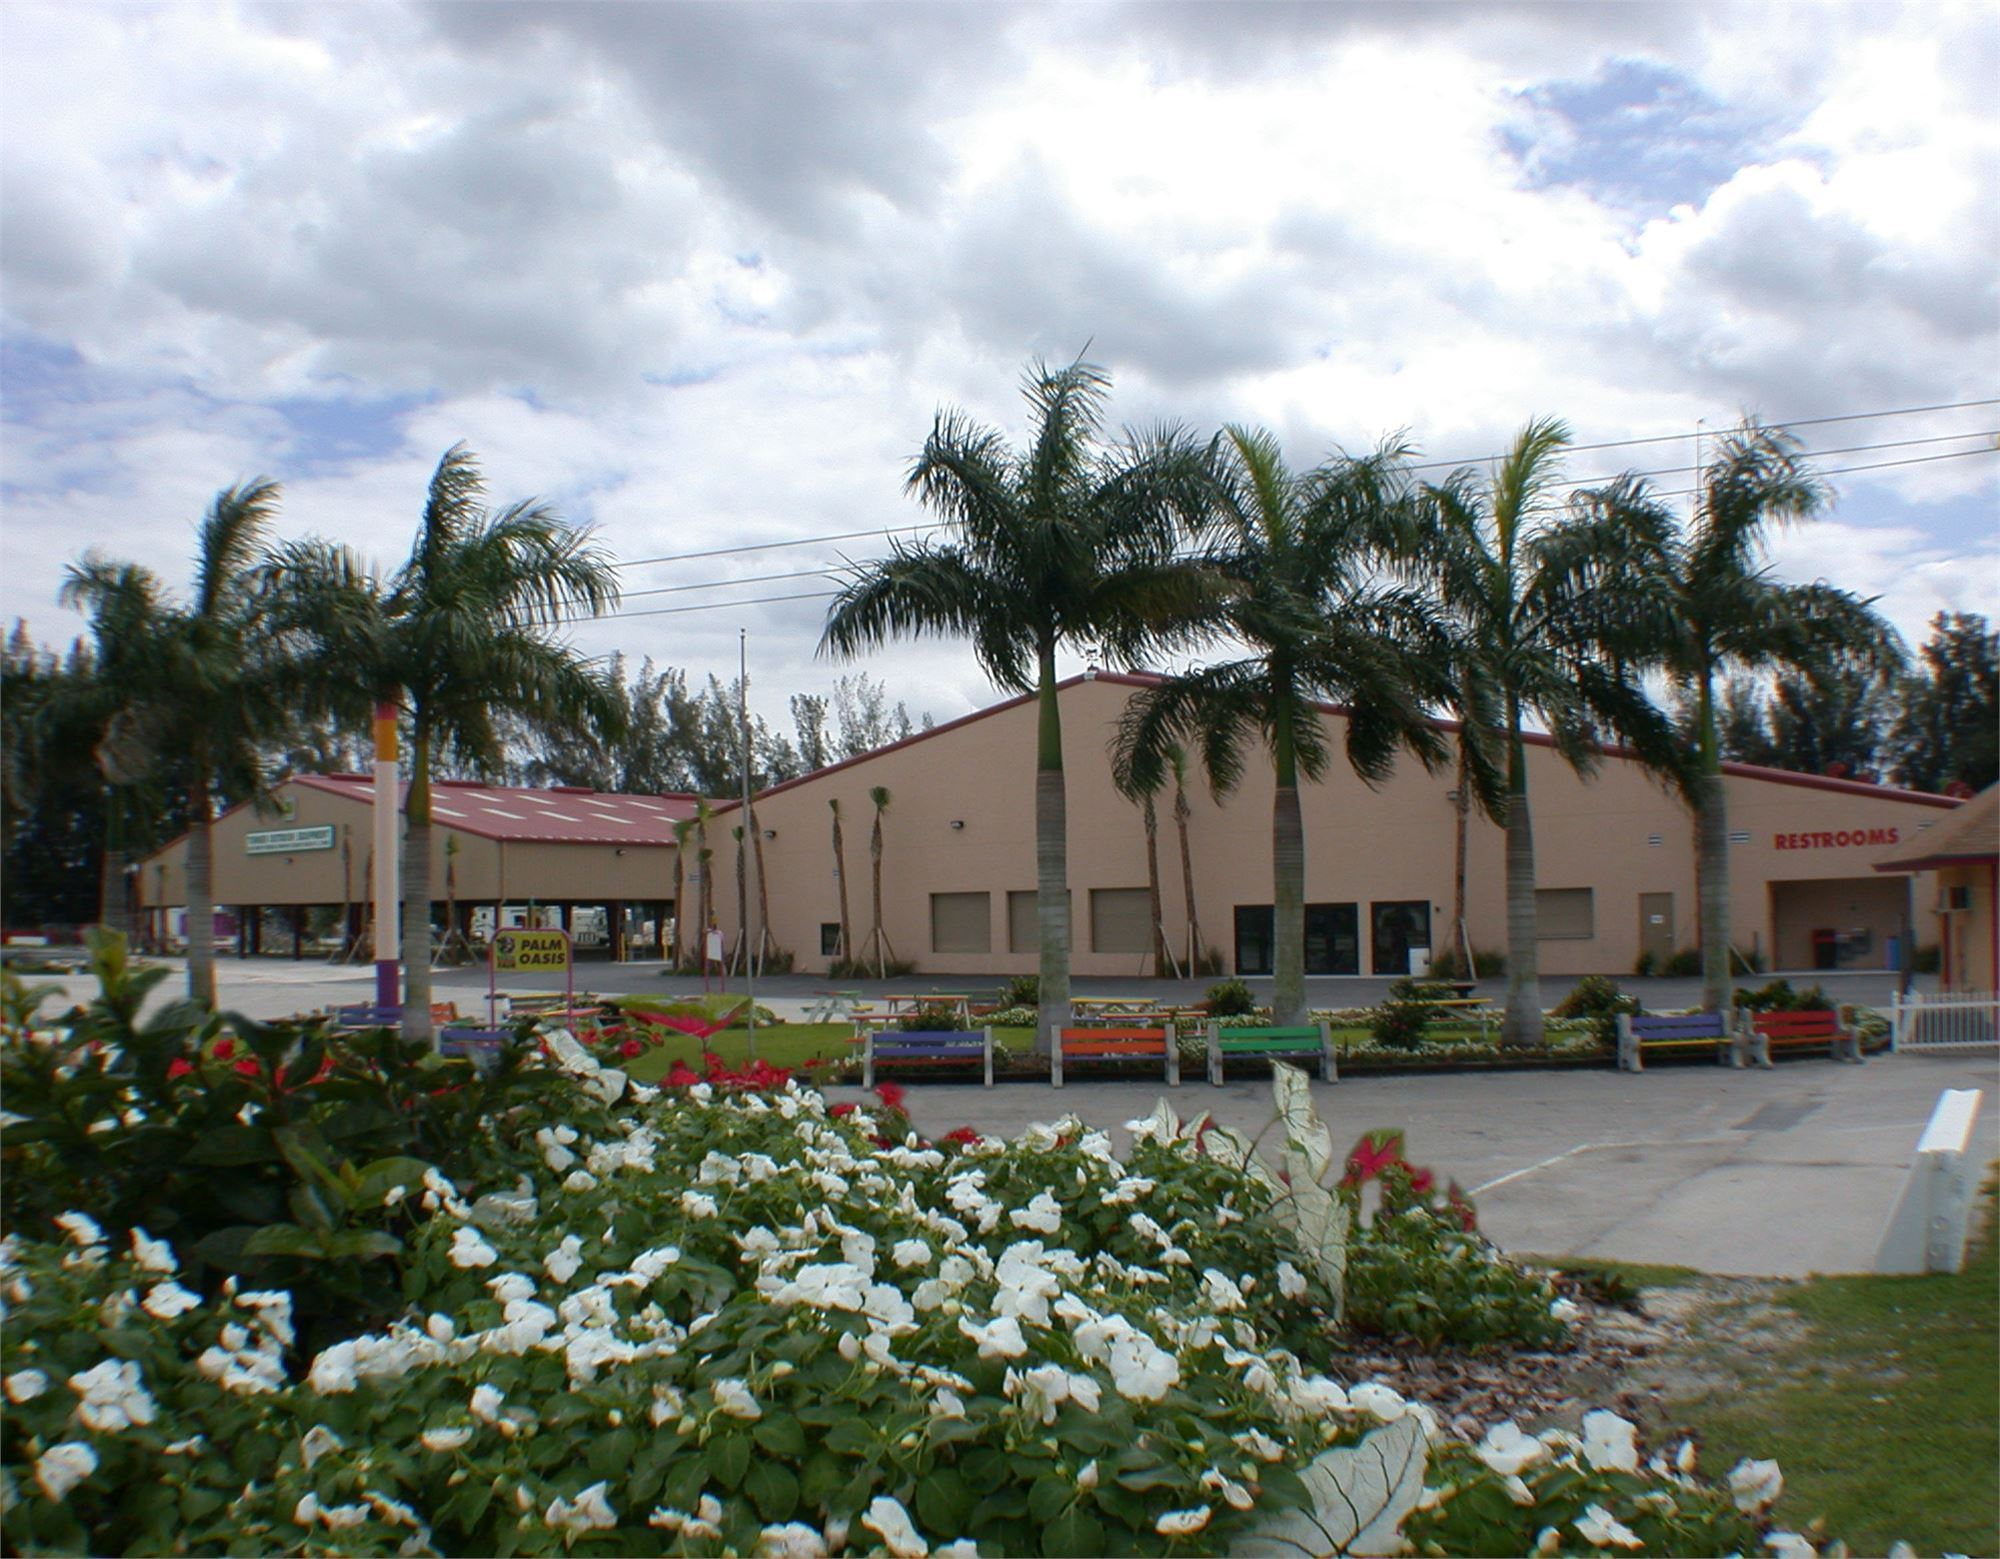 Upcoming Events In South Florida Fairgrounds Events Calendar